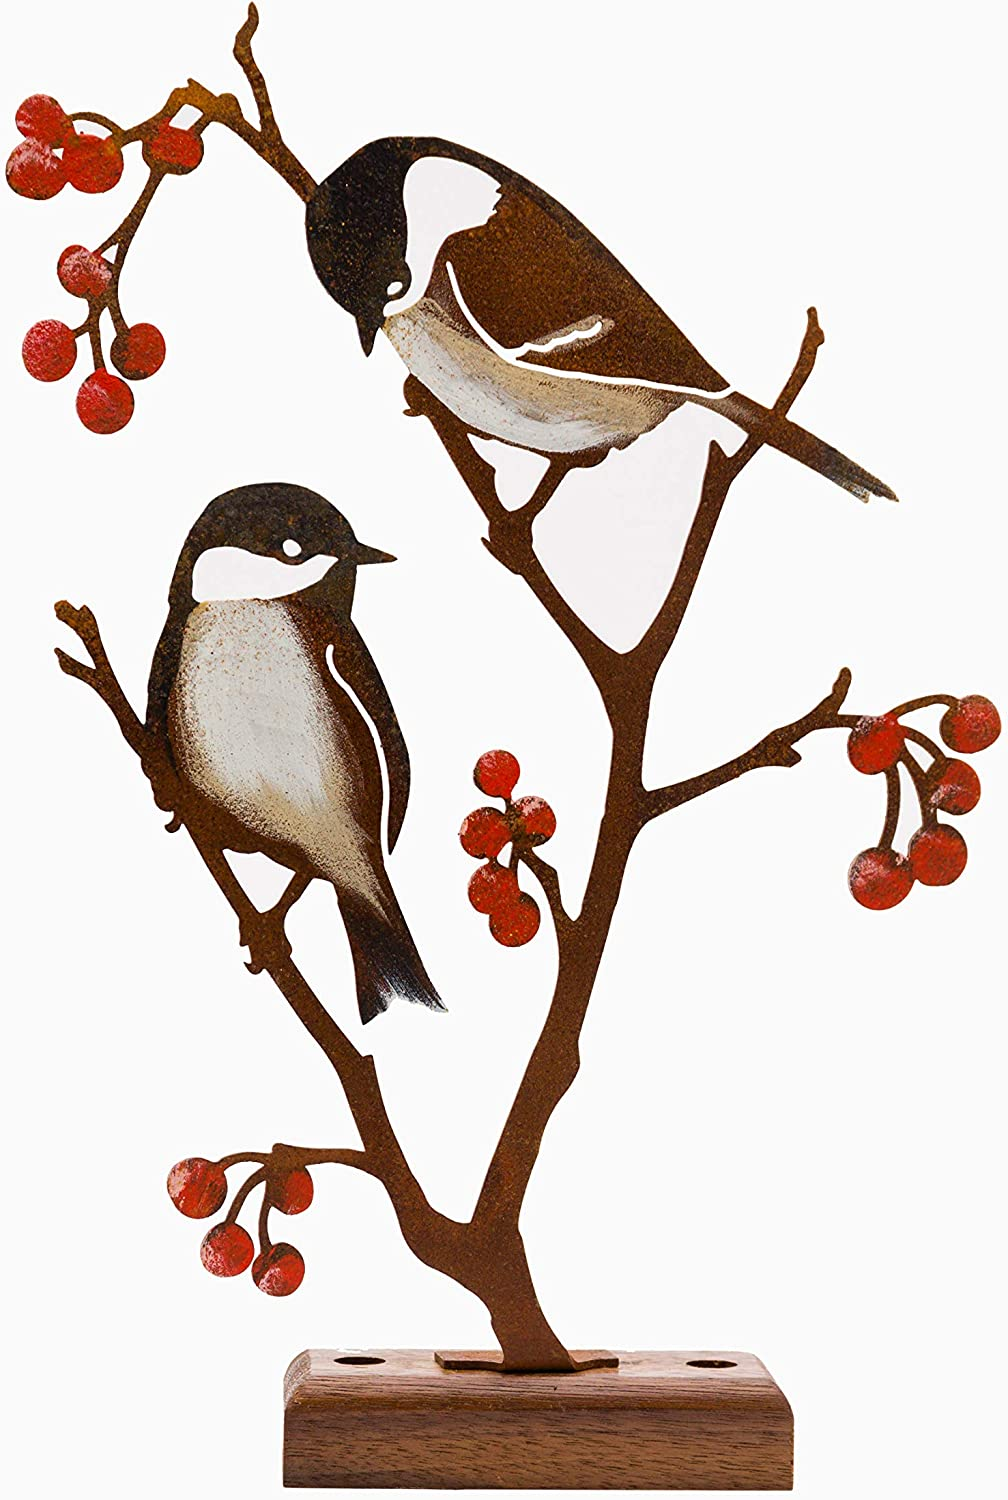 Rustic Metal Yard Art - Hand-Painted Chickadees & Berries - Inspired by Nature - Fine Addition to Any Planter - Unique Gift for Garden Enthusiasts